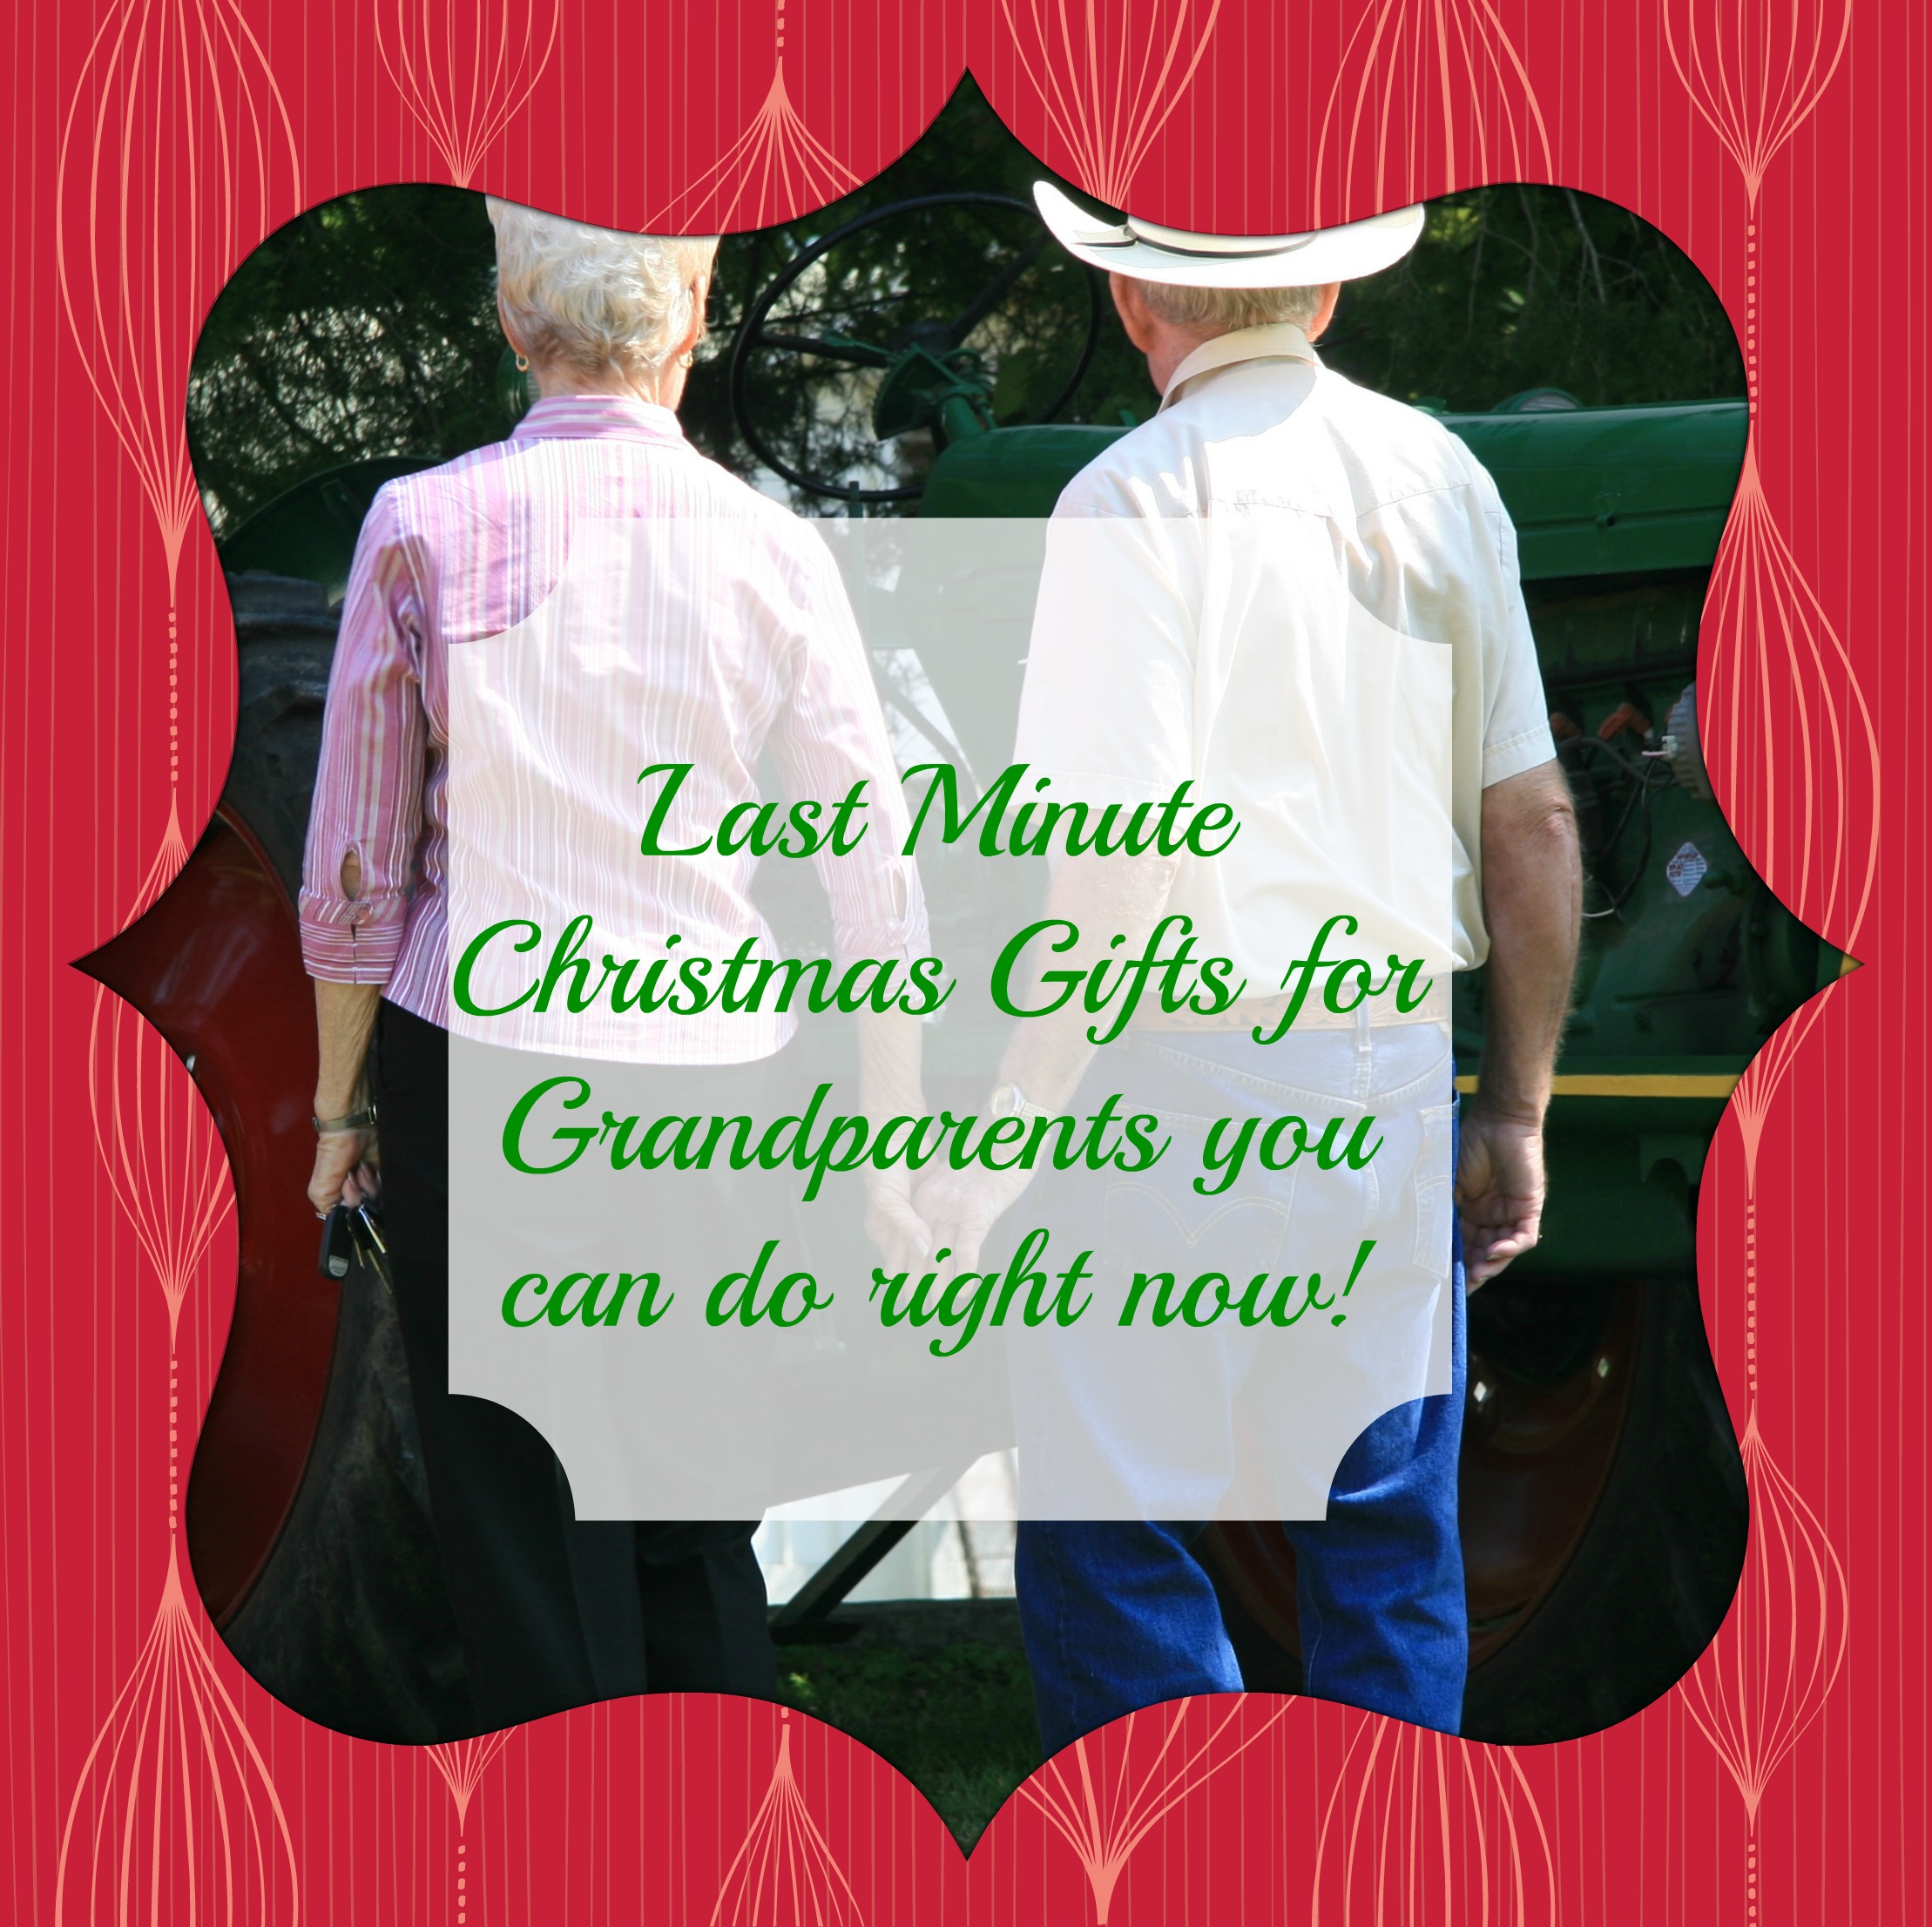 last minute christmas gifts for grandparents you can do right now